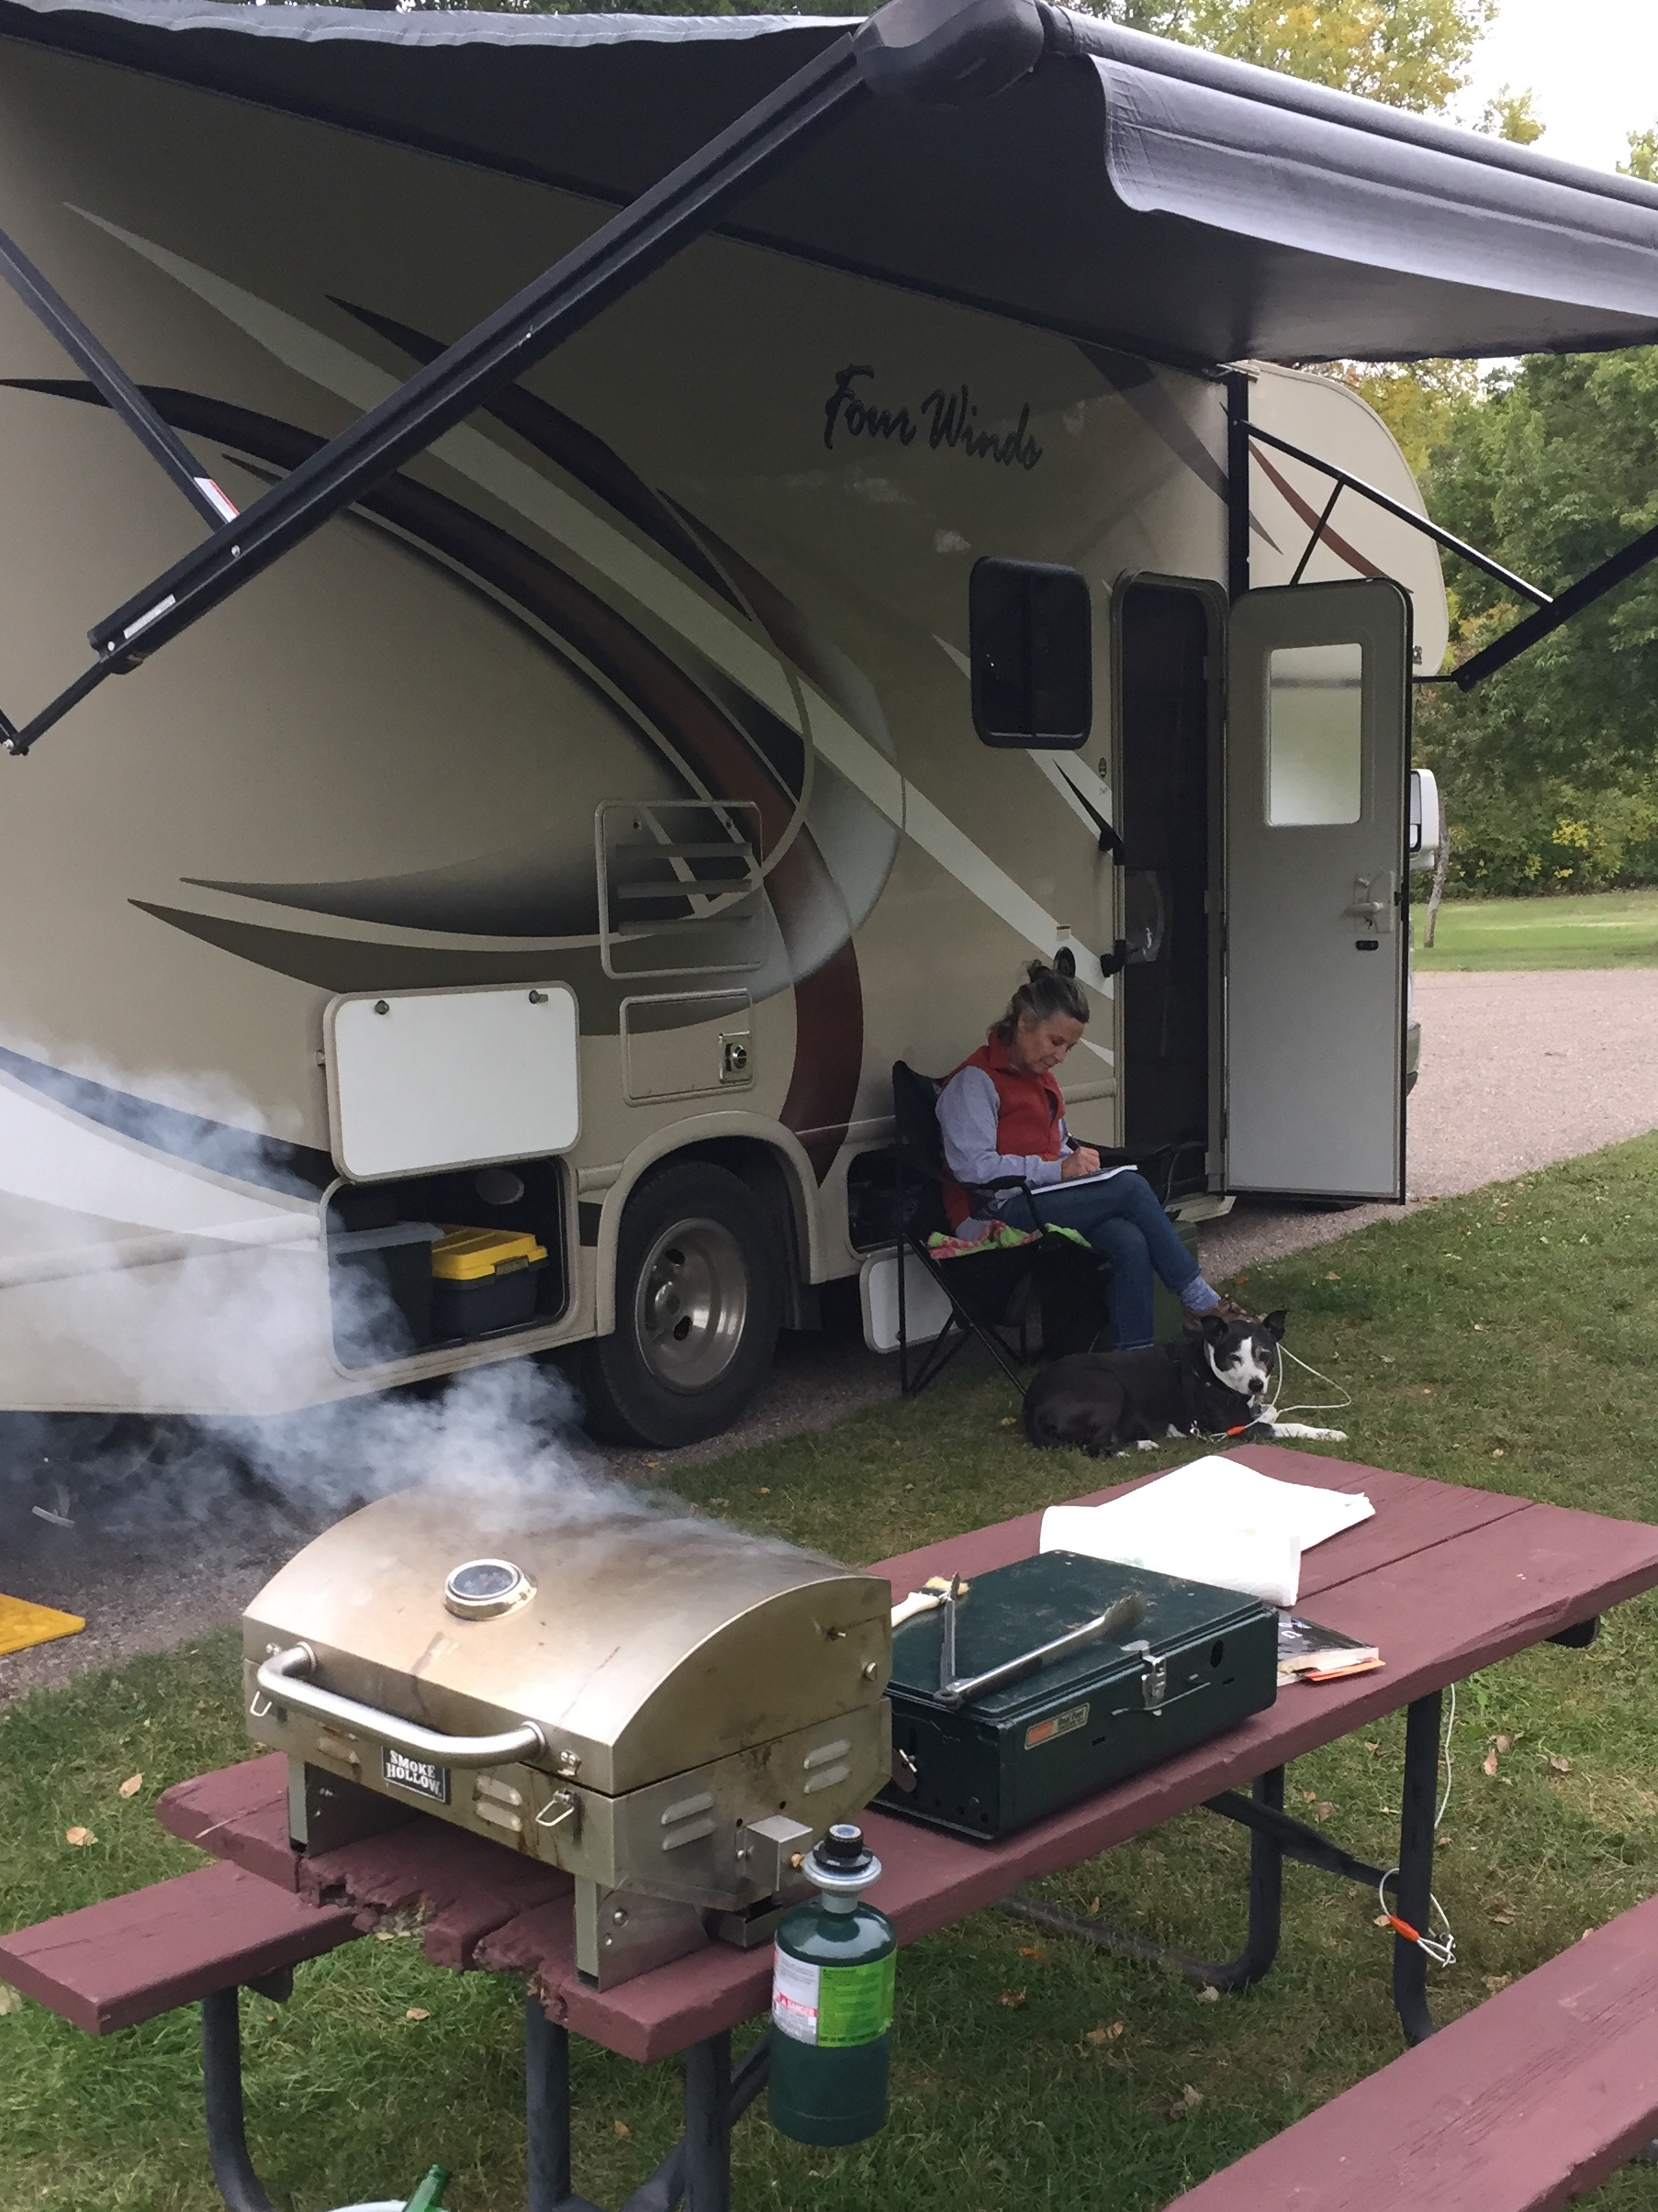 Camping and cooking out in Nebraska